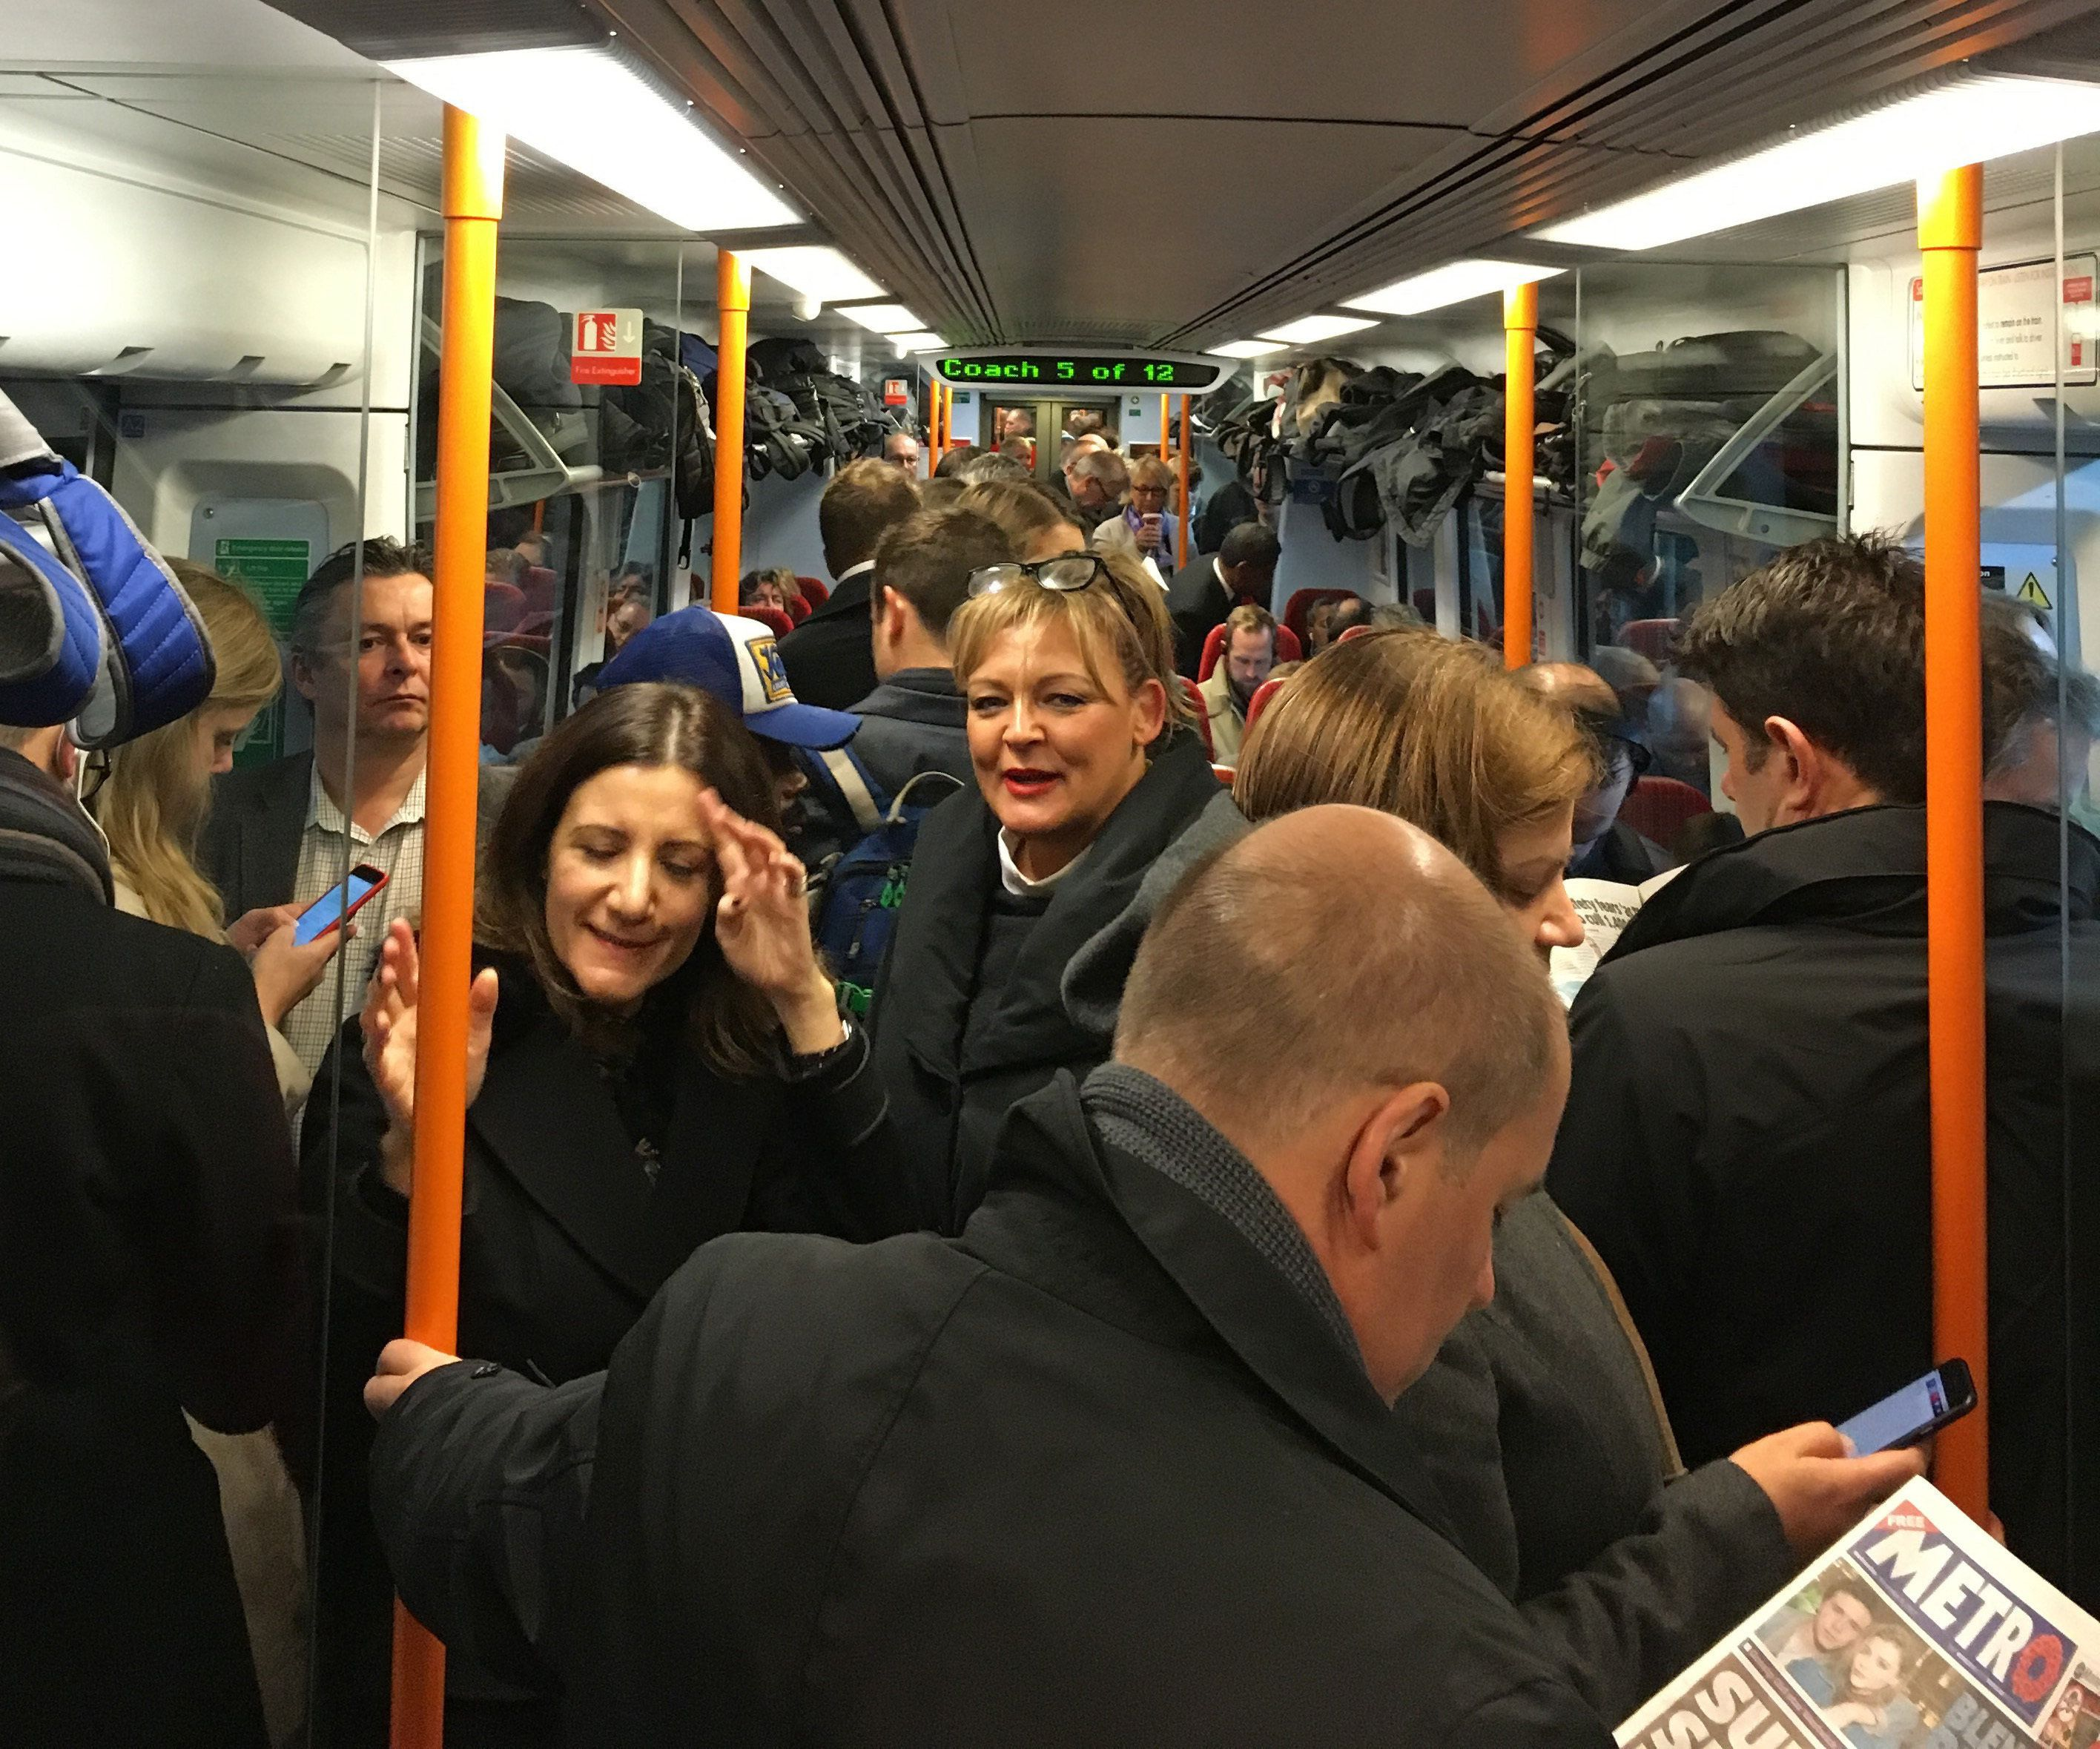 <strong>Commuters ride a crowded South Western Railway train from Portsmouth to London as rail services are hit by the biggest disruption in decades as workers strike&nbsp;</strong>